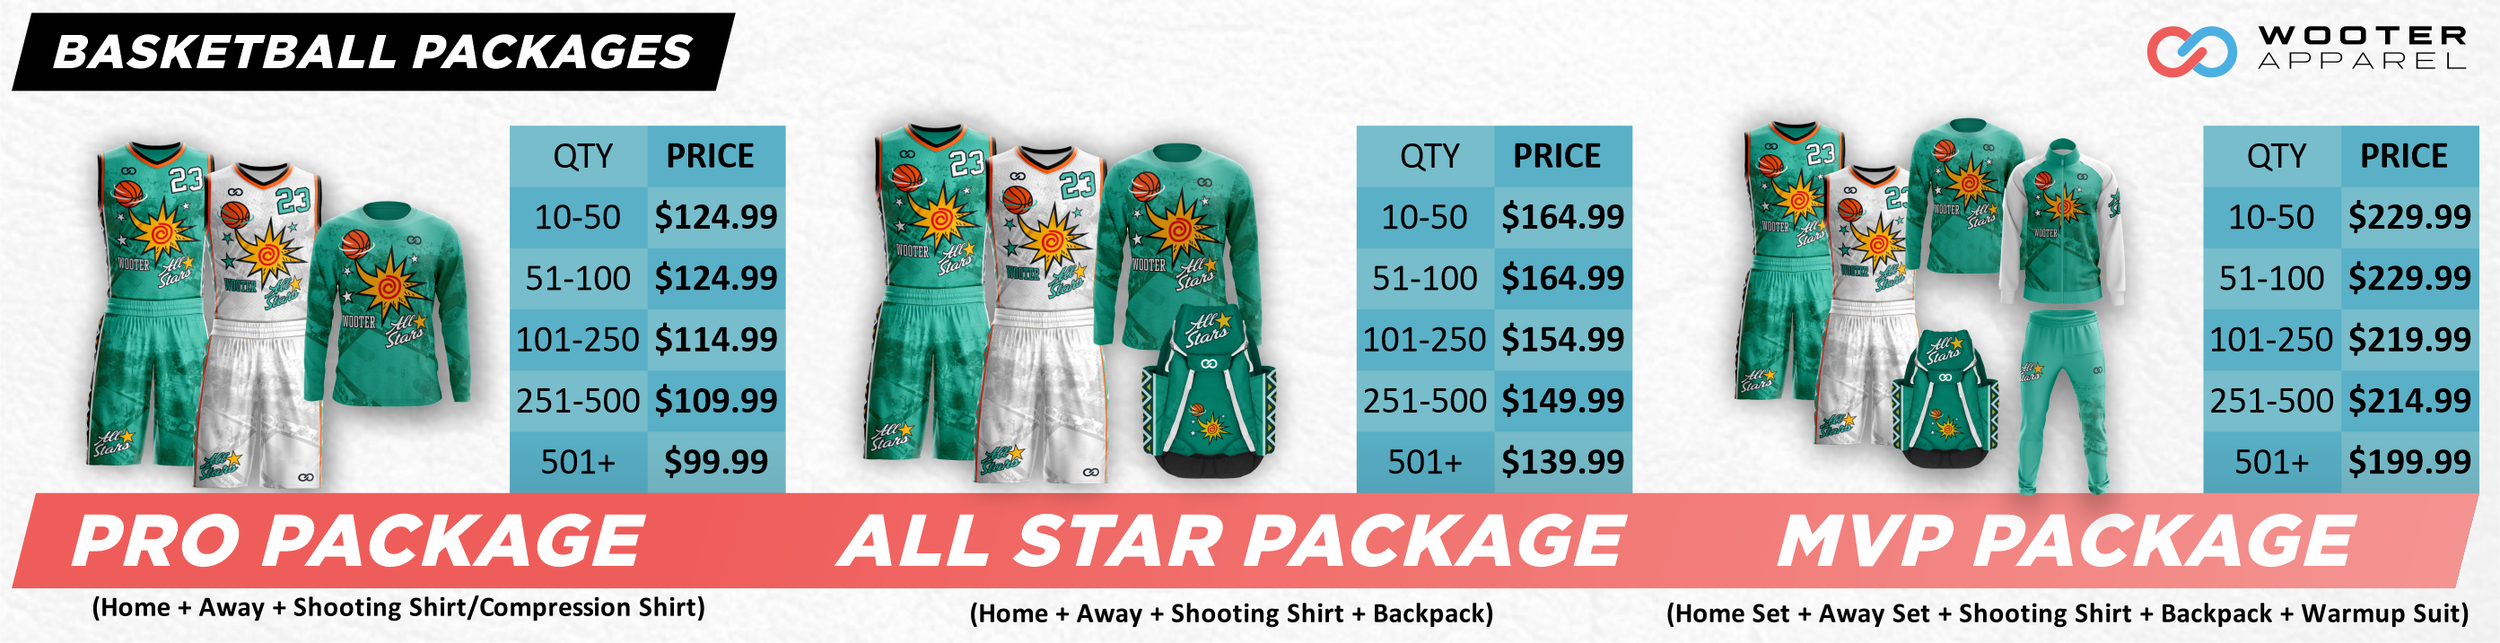 Wooter Apparel Basketball Jersey and Uniform Packages and Deals.png